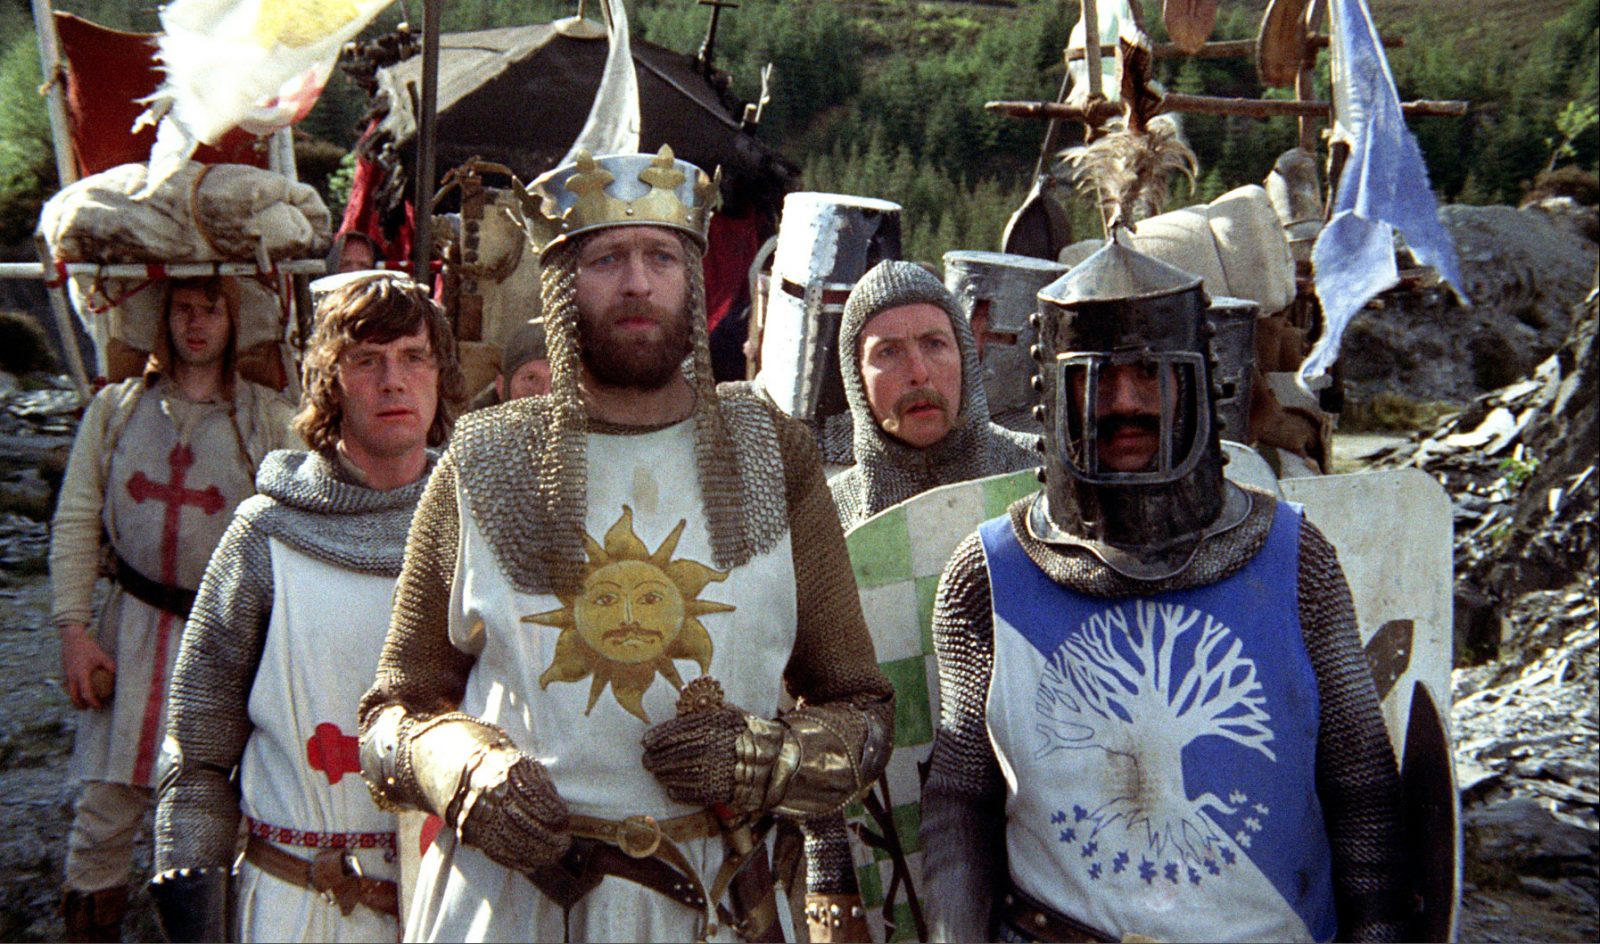 'Monty Python and the Holy Grail' will be shown as part of Buffalo Film Seminars.